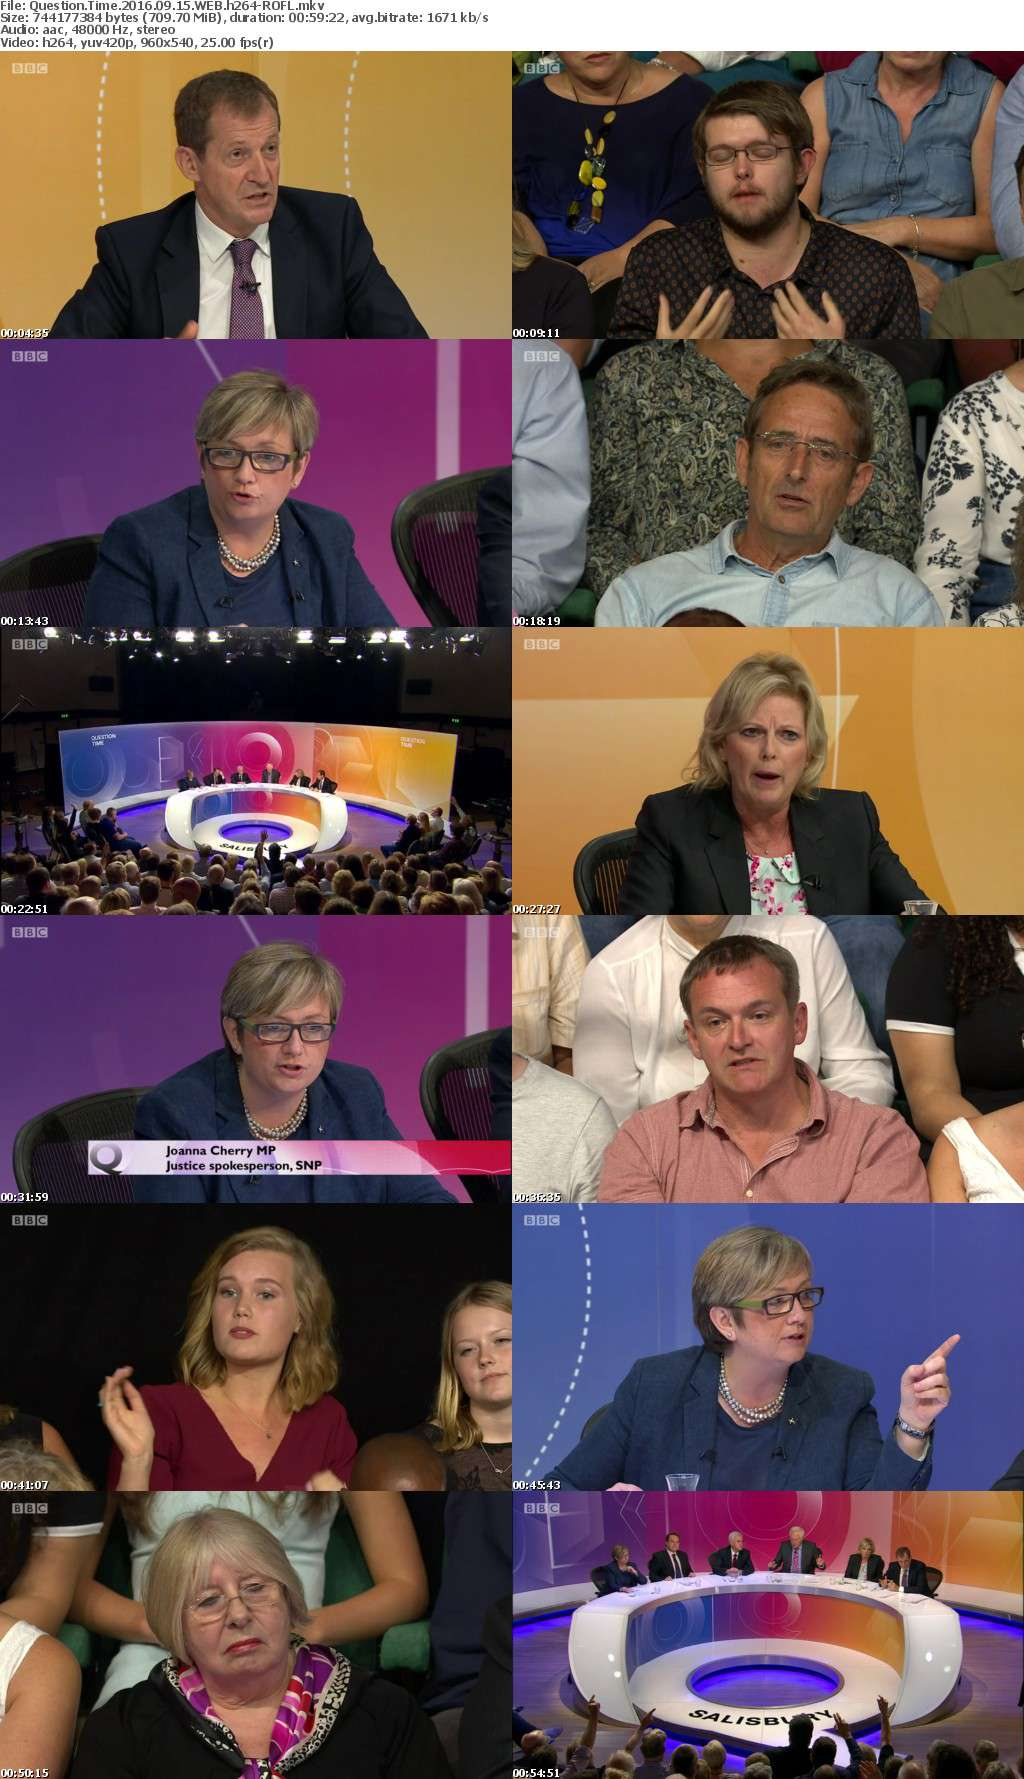 Question Time 2016 09 15 WEB h264-ROFL